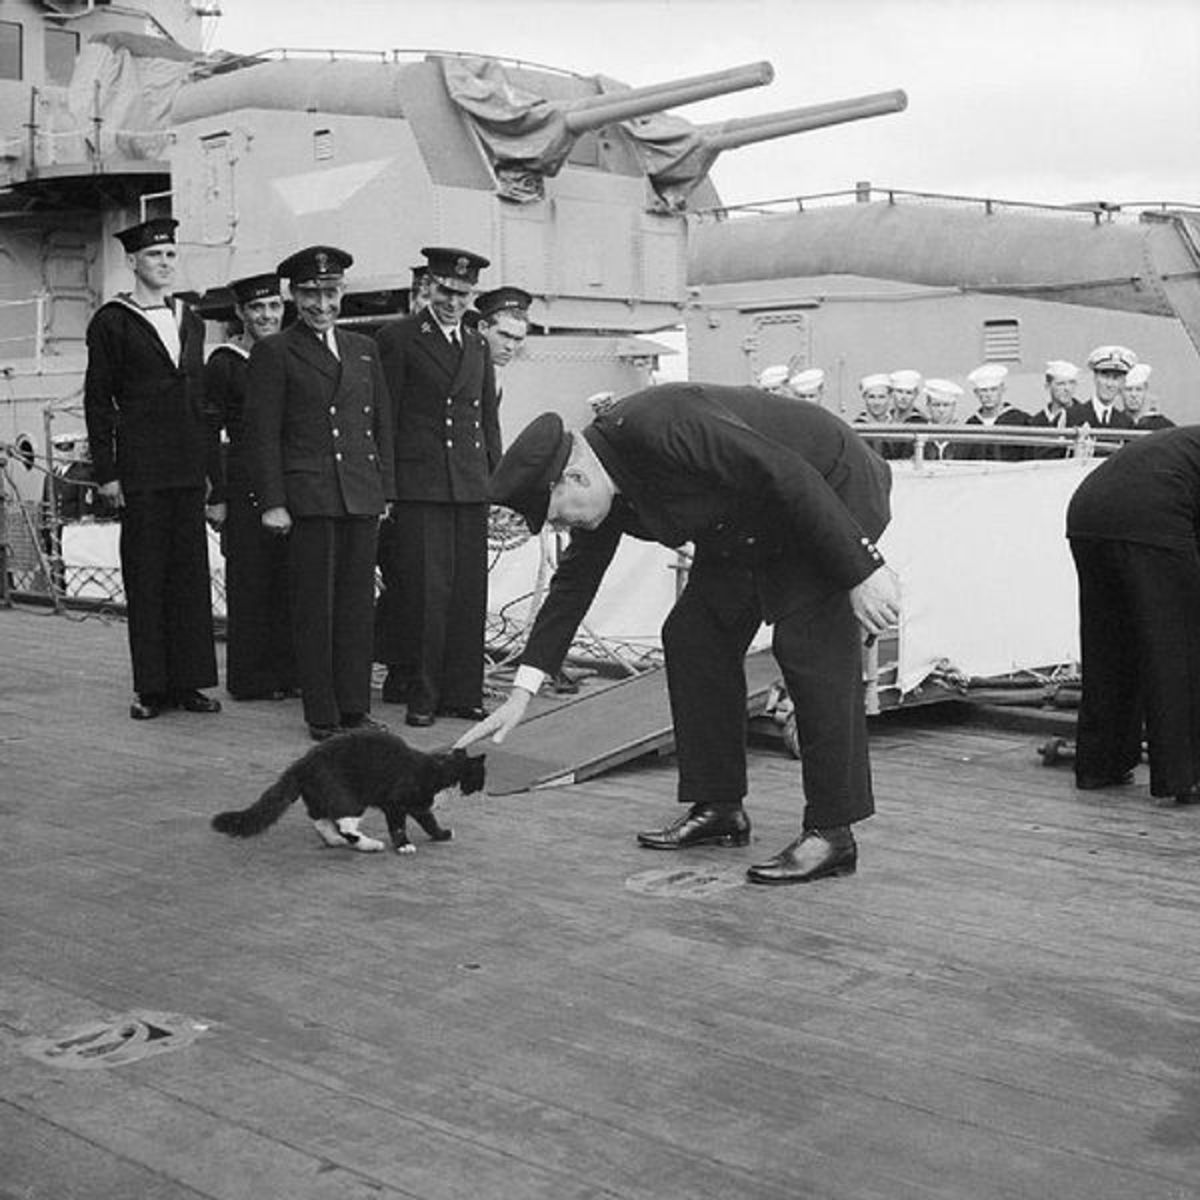 Blackie was the ship's cat aboard HMS Prince of Wales, which took Winston Churchill (seen here petting Blackie) to the Atlantic Conference of 1941. The crew changed Blackie's name to Churchill.